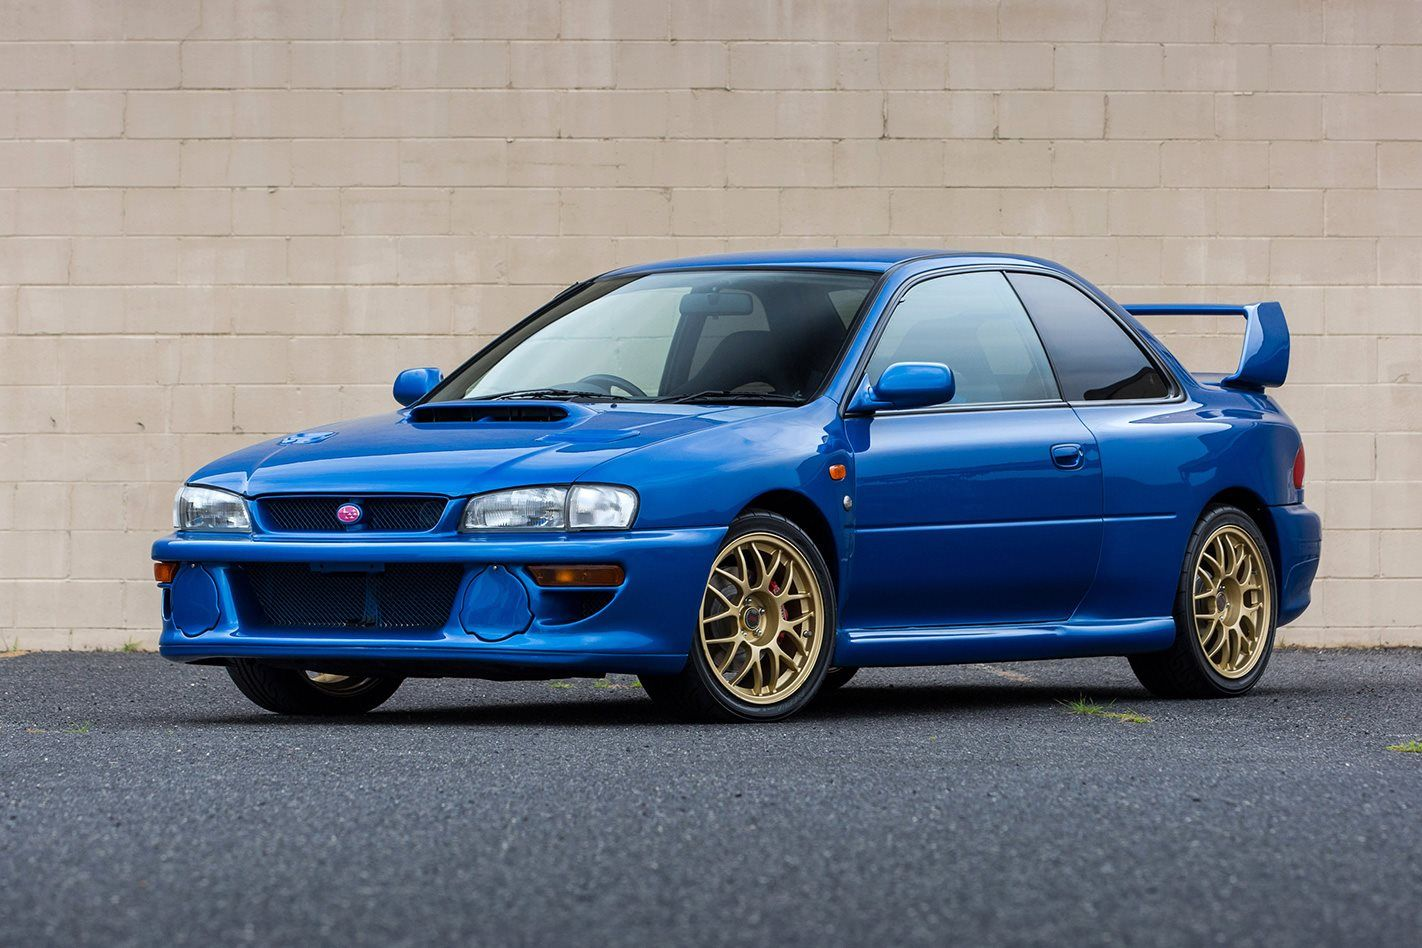 5 Most Reliable Japanese Sports Cars (vs 5 European Cars Built To Crumble)